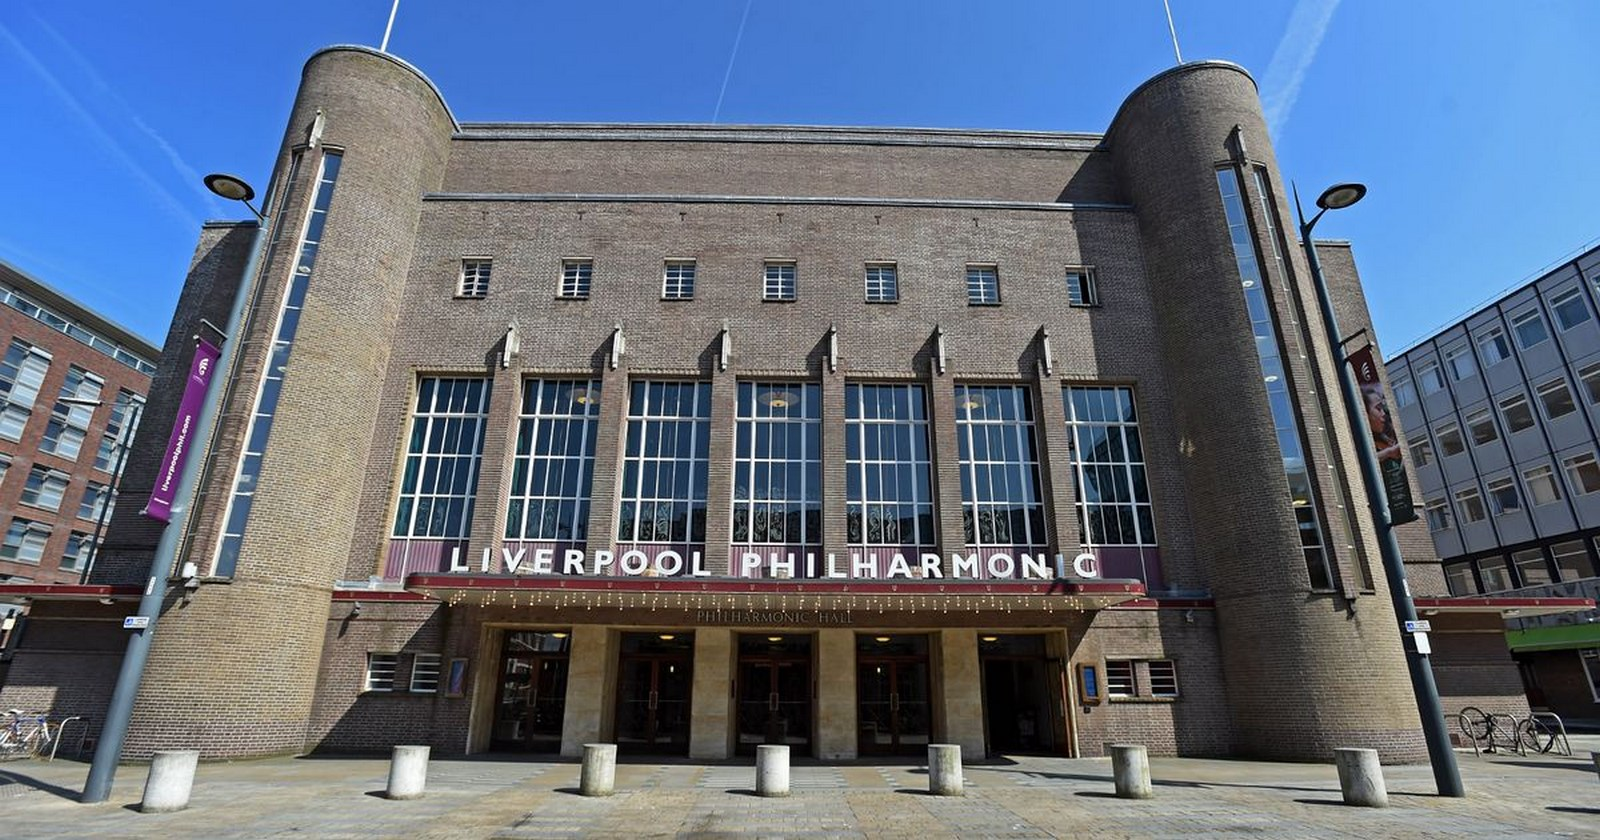 30 Structures that define Liverpool Architecture - Liverpool Philharmonic